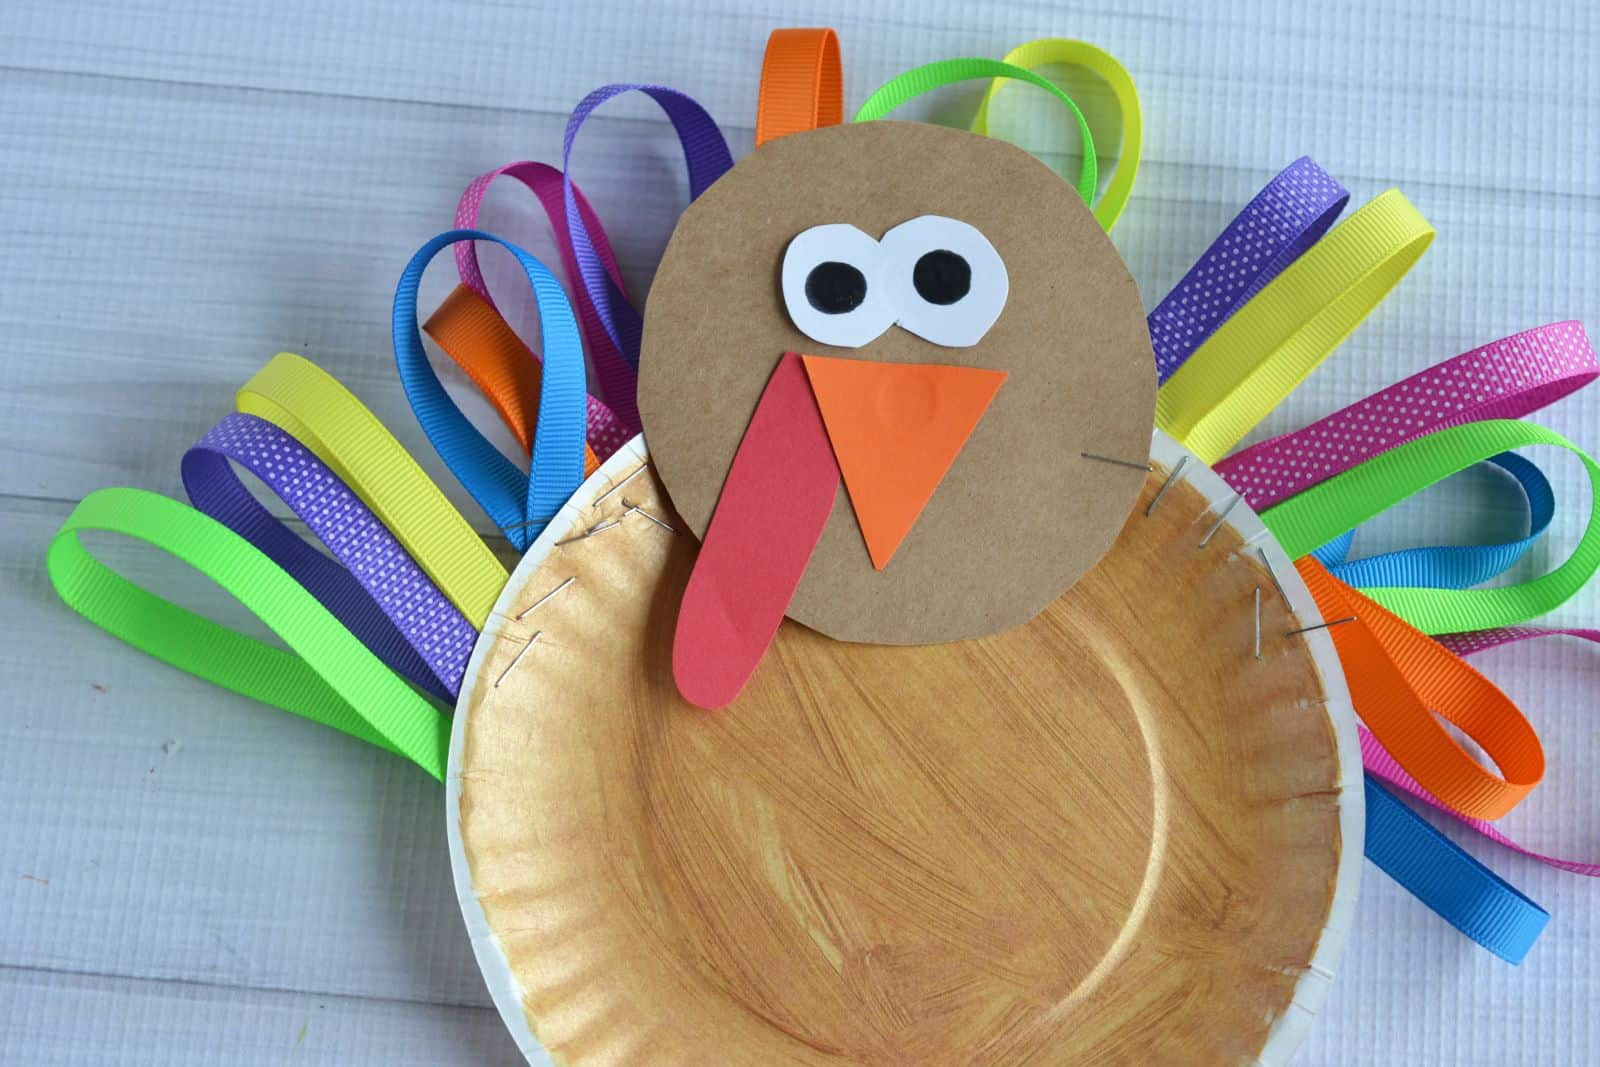 10 artsy turkey projects kids can make to celebrate thanksgiving doily turkey craft via i heart crafty things what a clever use of doilies let kids decorate these decorative papers to make colorful feathers jeuxipadfo Images